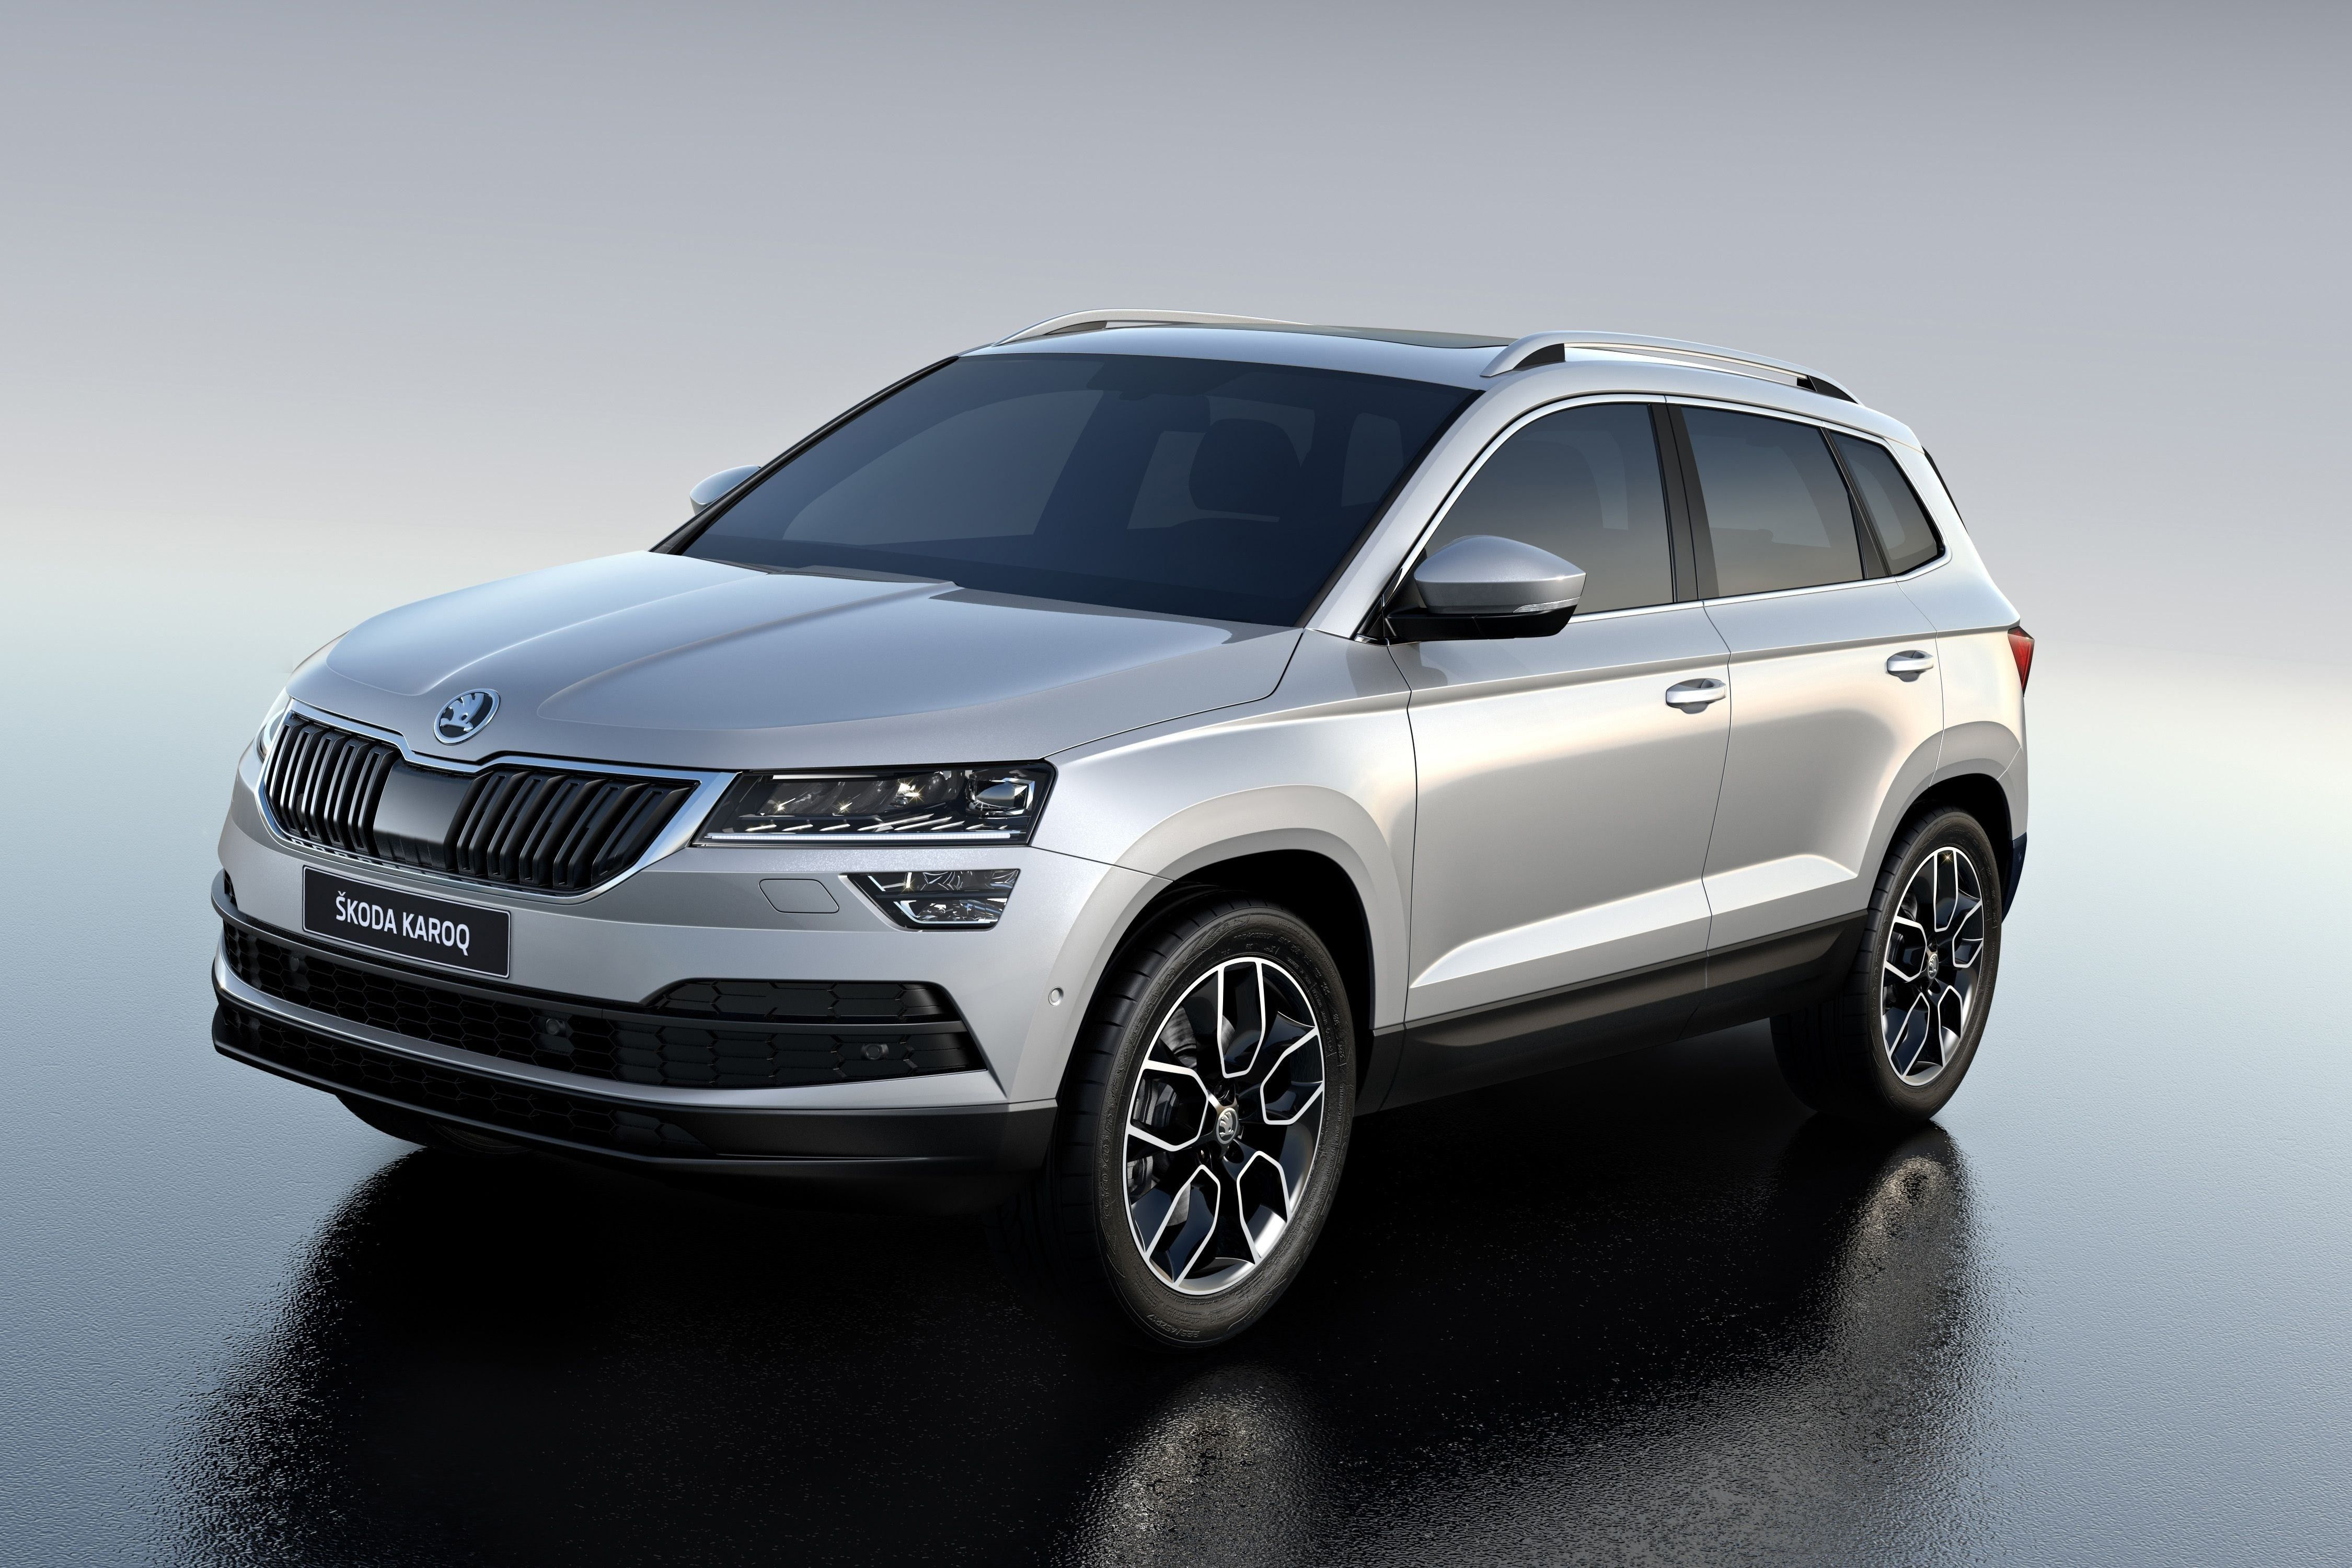 57 New 2020 Skoda Yeti India Egypt Price And Release Date Cars